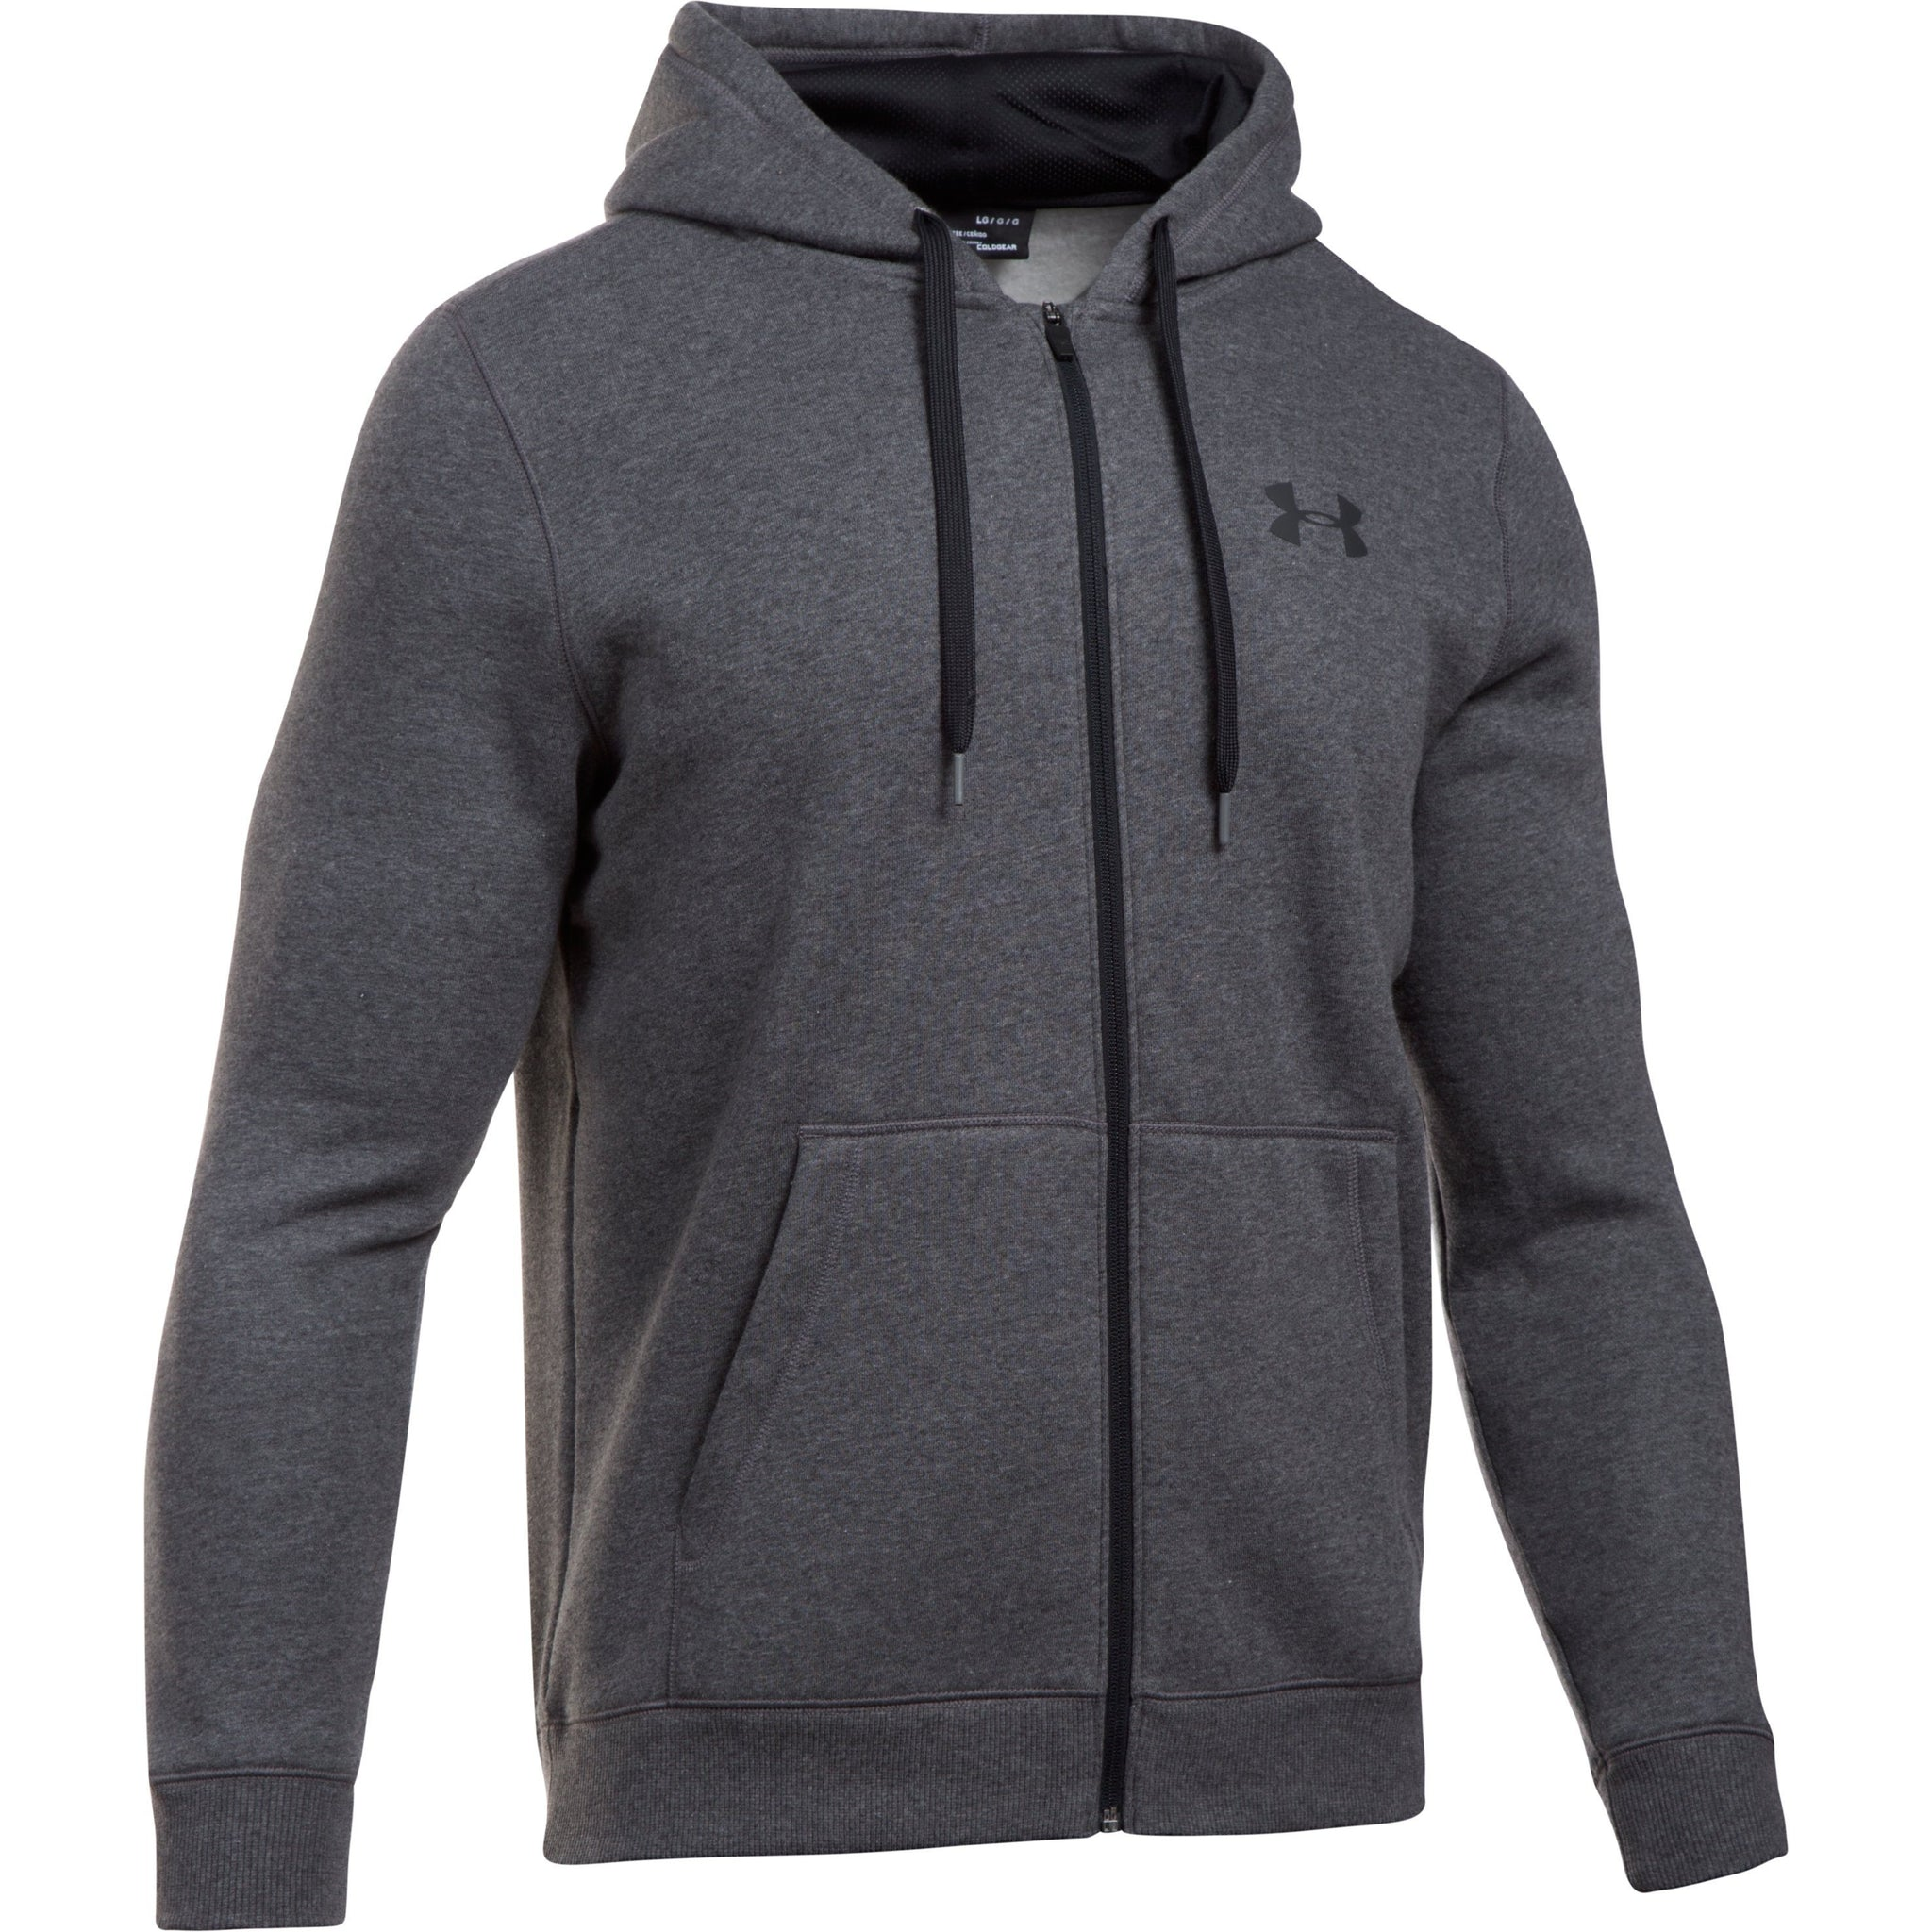 Billede af Under Armour Rival Fitted Zip - Carbon Heather